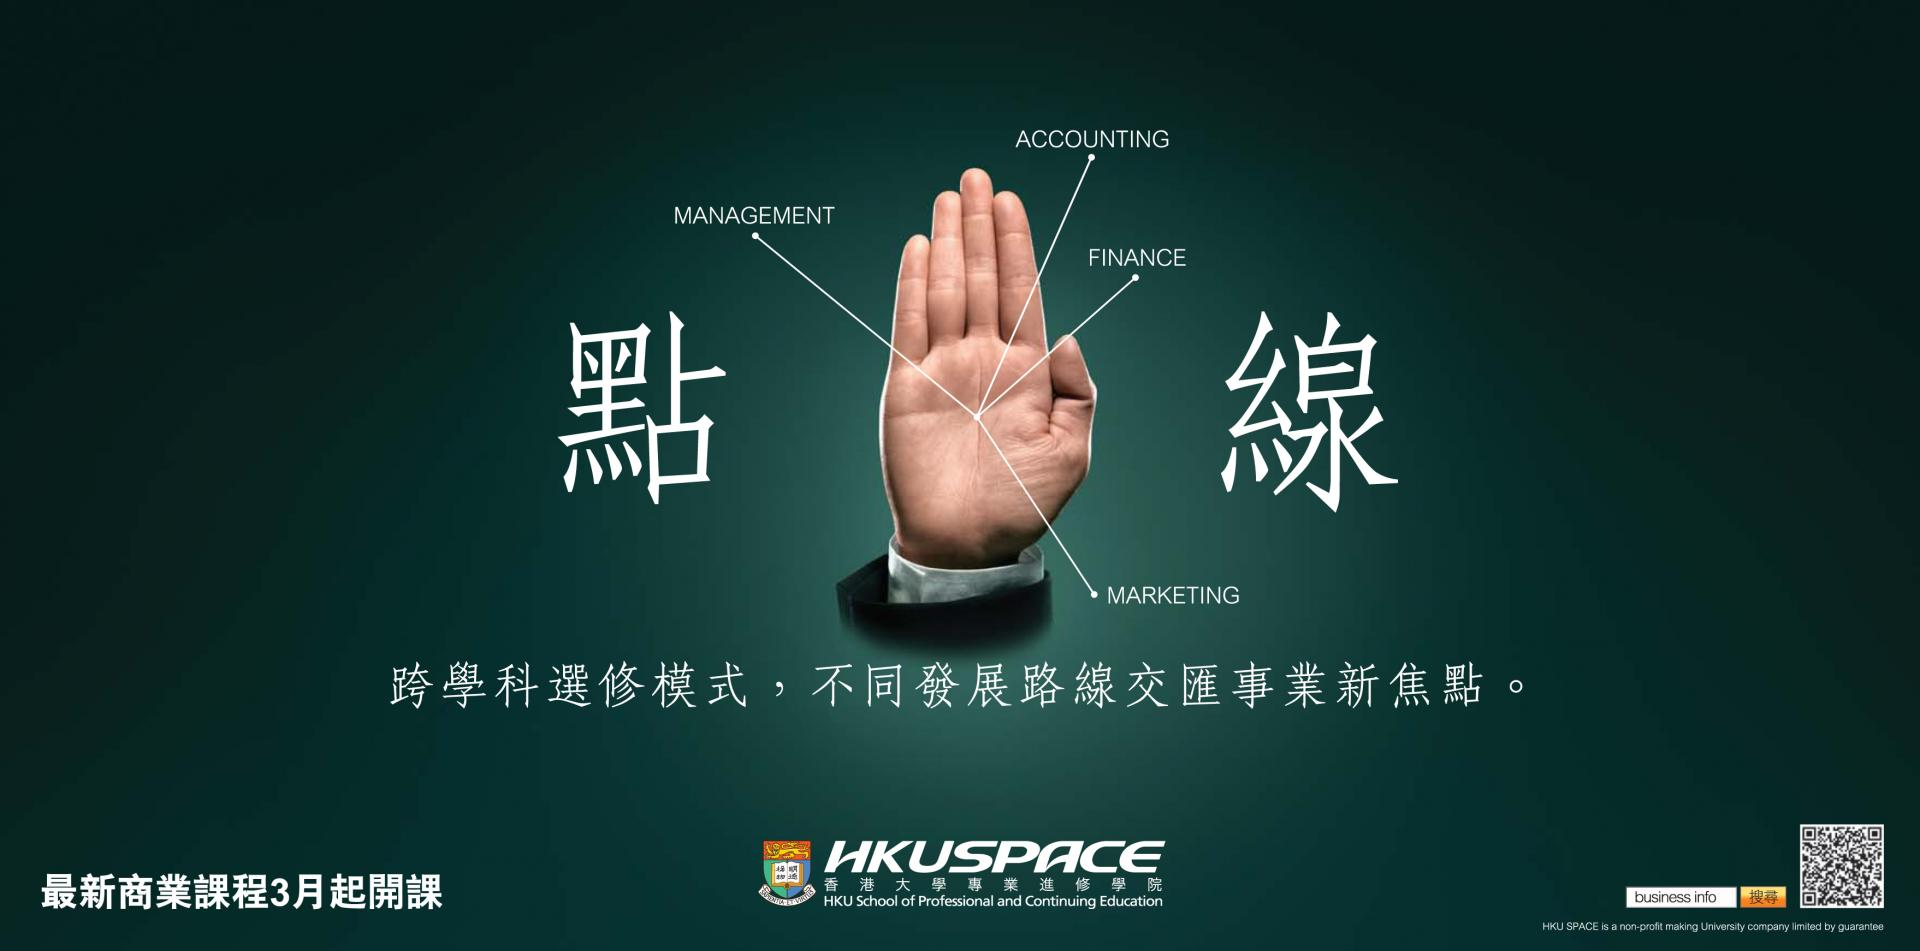 HKU space advertisement